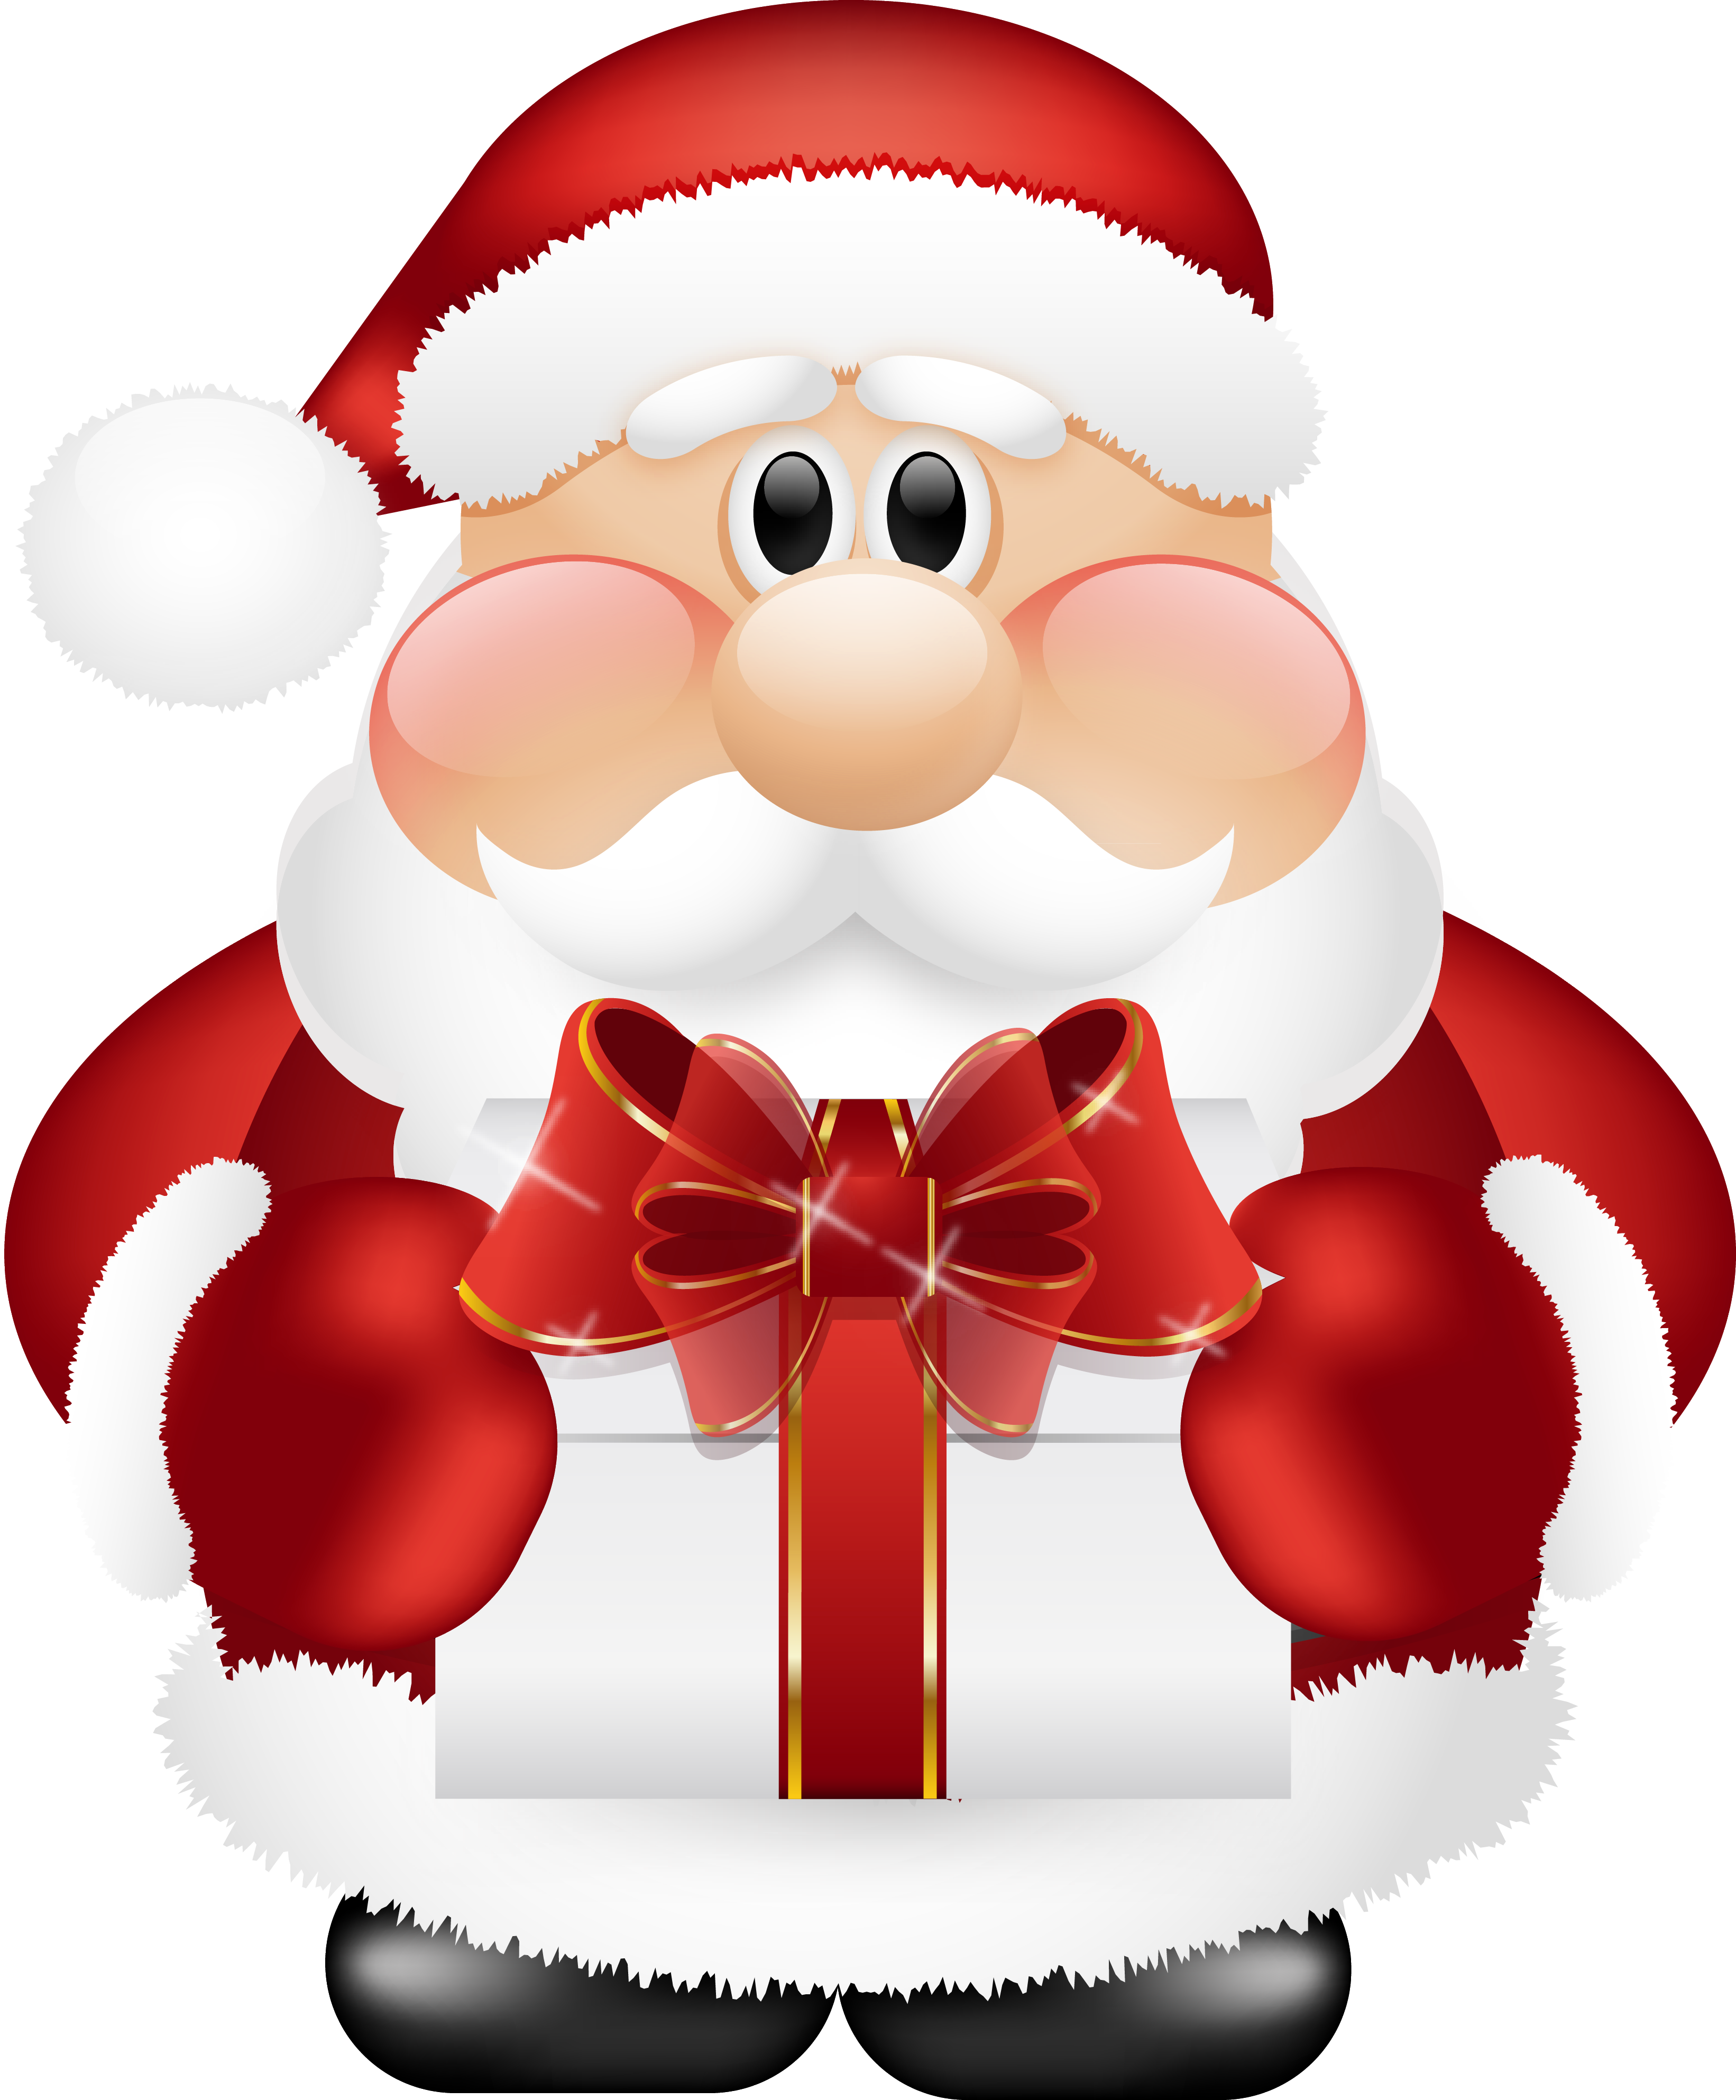 Cute santa claus with. Missions clipart secret pal